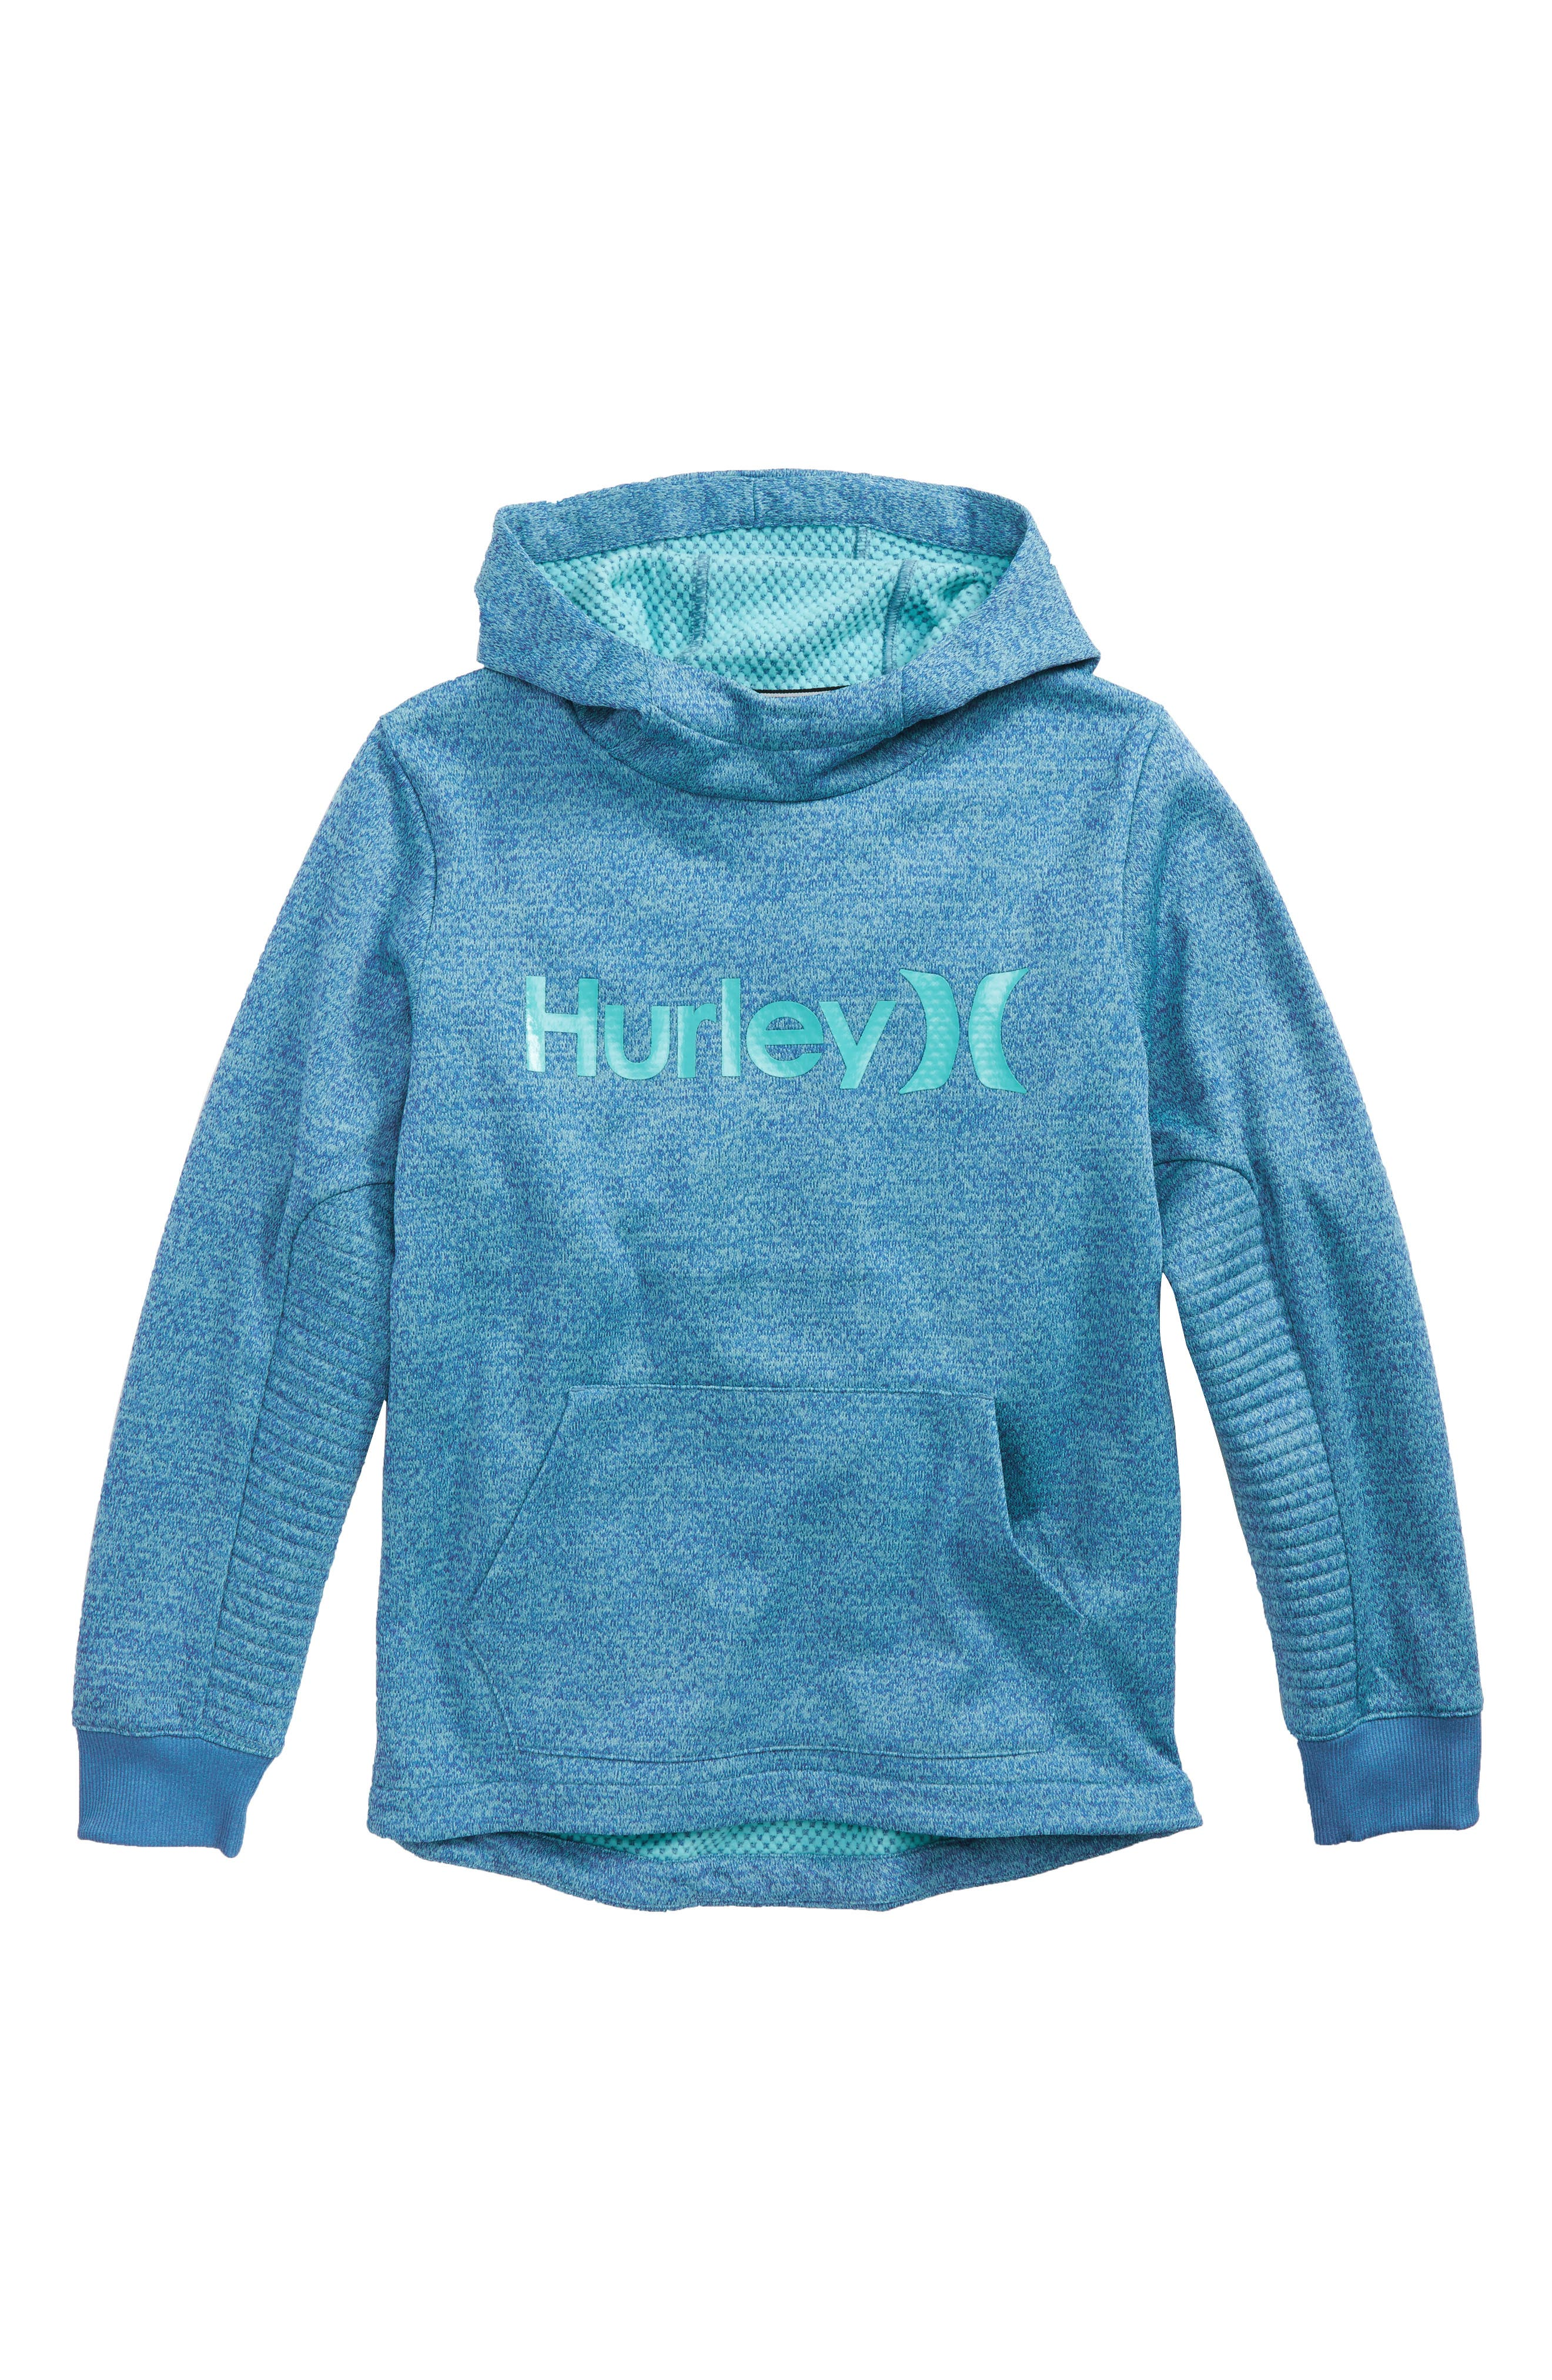 Hurley One and Only Therma-FIT Pullover Hoodie (Big Boys)